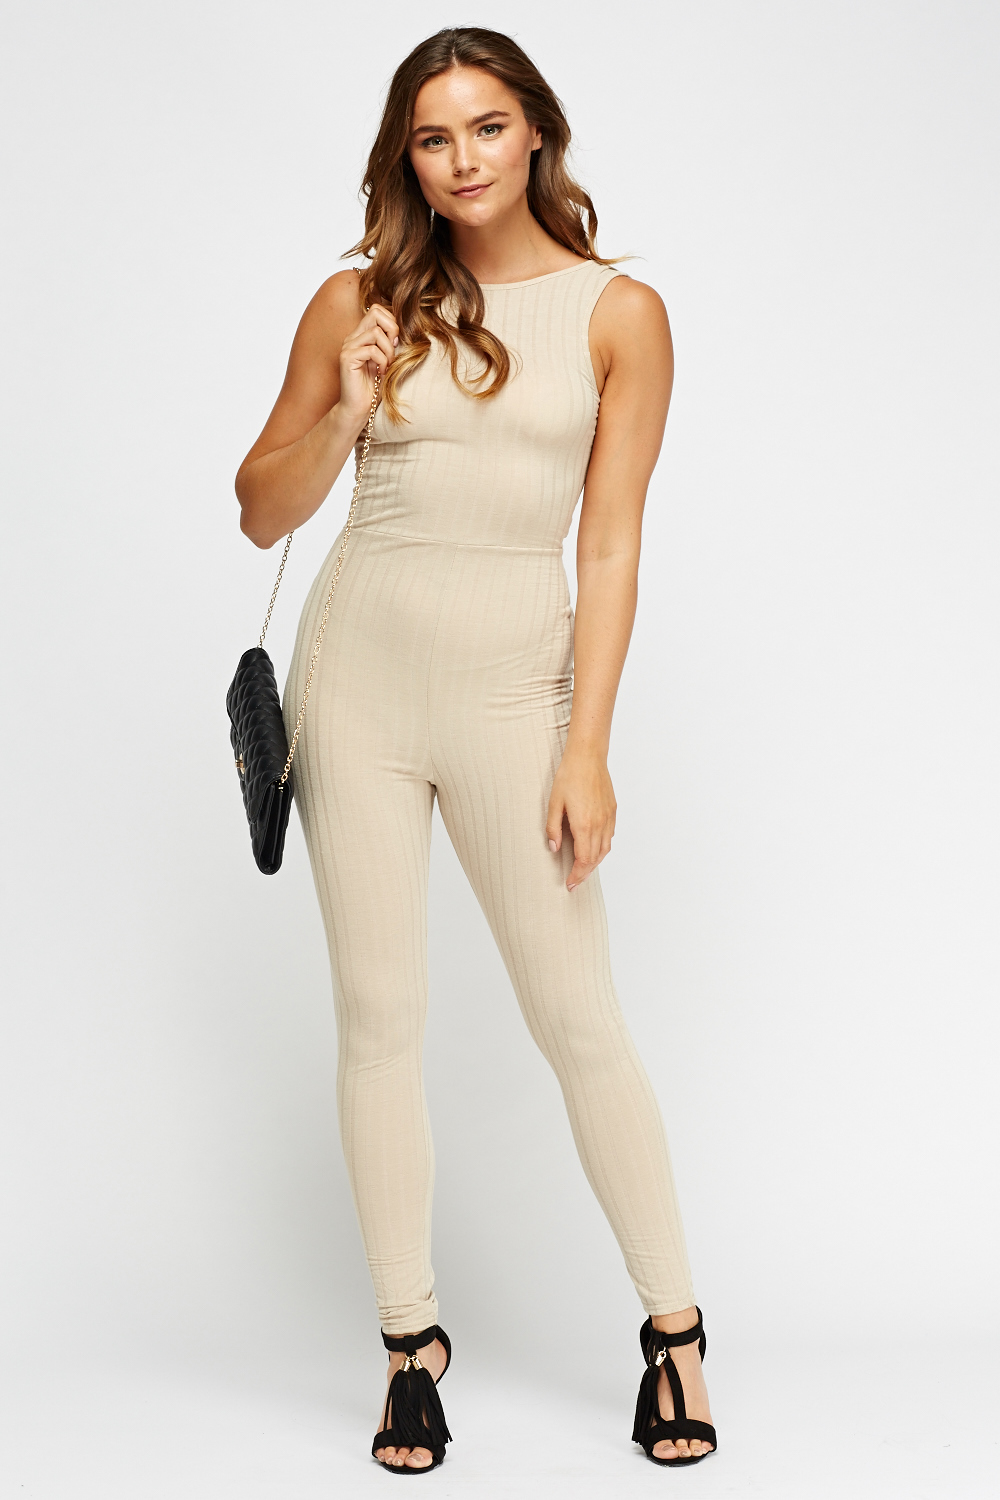 Shop eBay for great deals on Beige Jumpsuits & Rompers for Women. You'll find new or used products in Beige Jumpsuits & Rompers for Women on eBay. Free shipping on selected items.